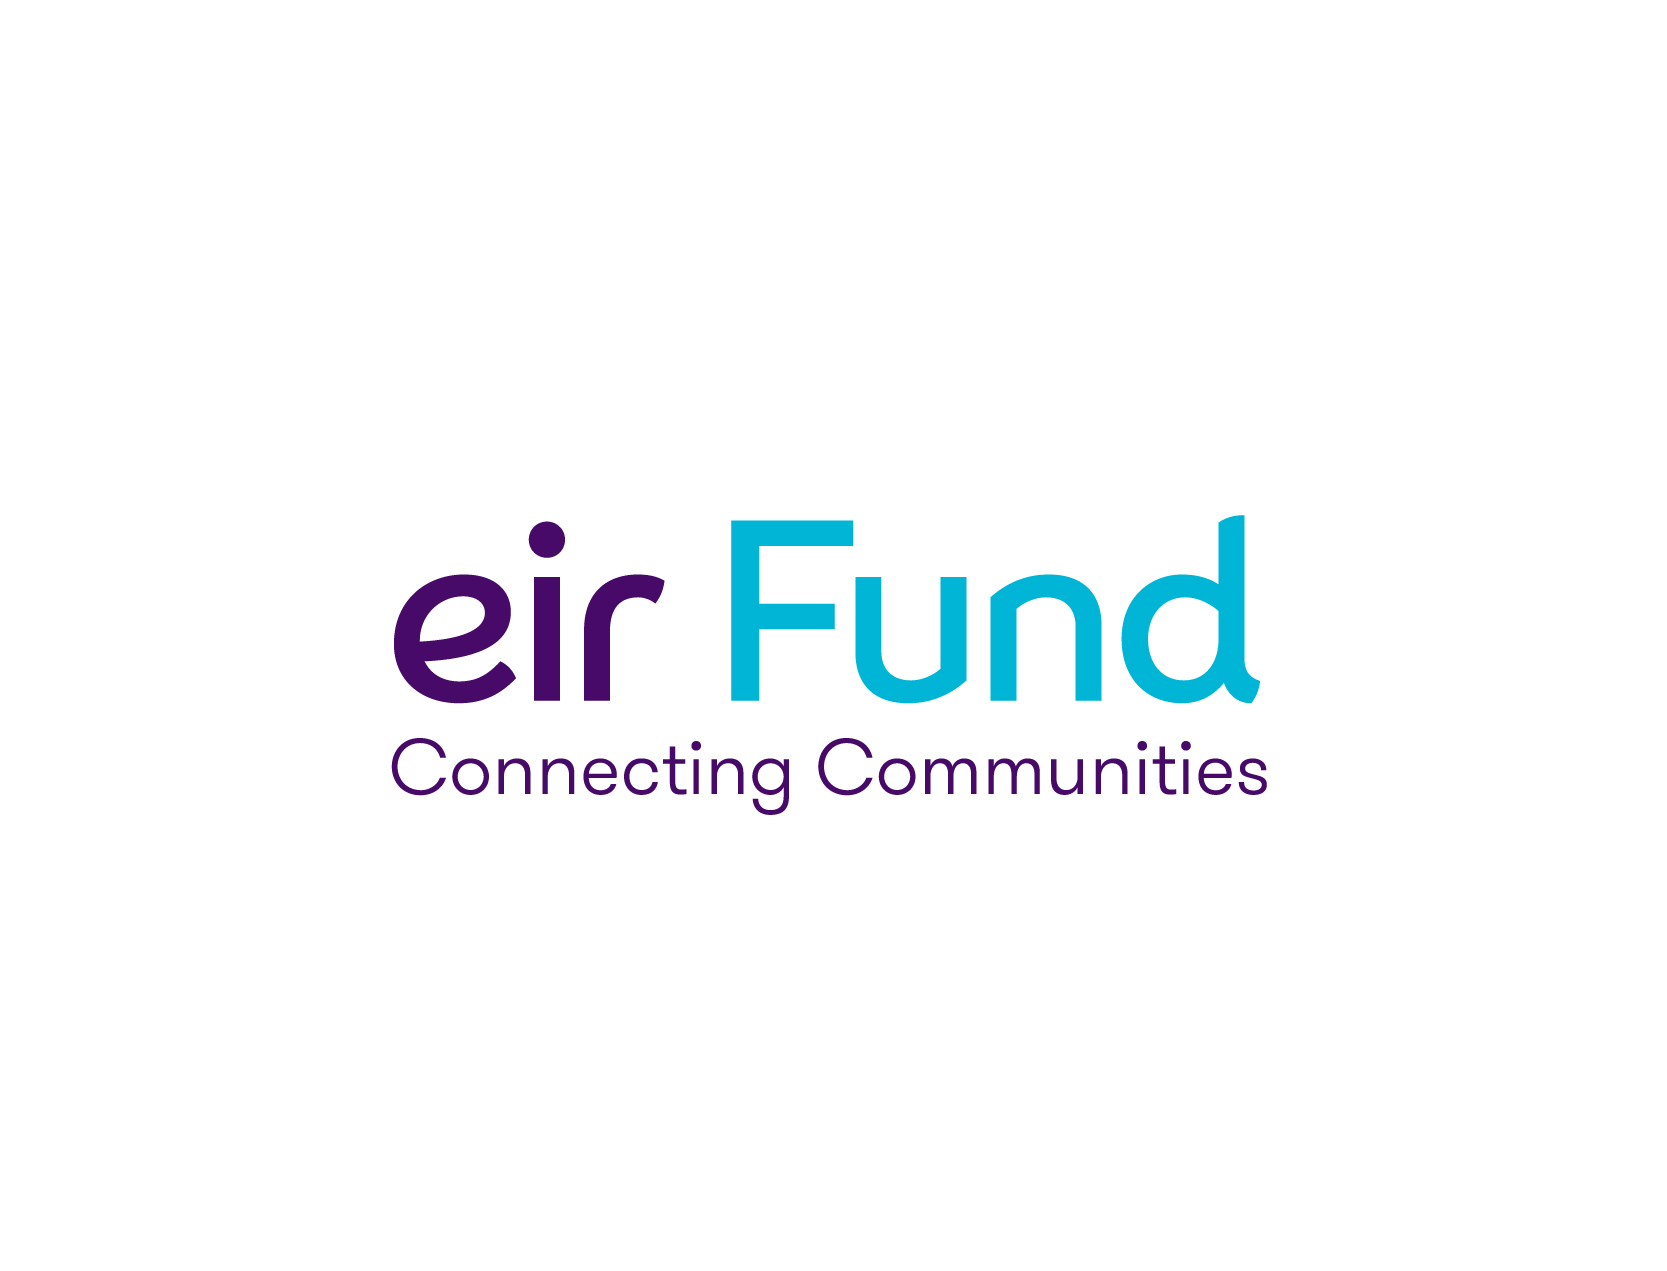 eir business in the community eir launches new corporate social responsibility programme the eir fund connecting communities